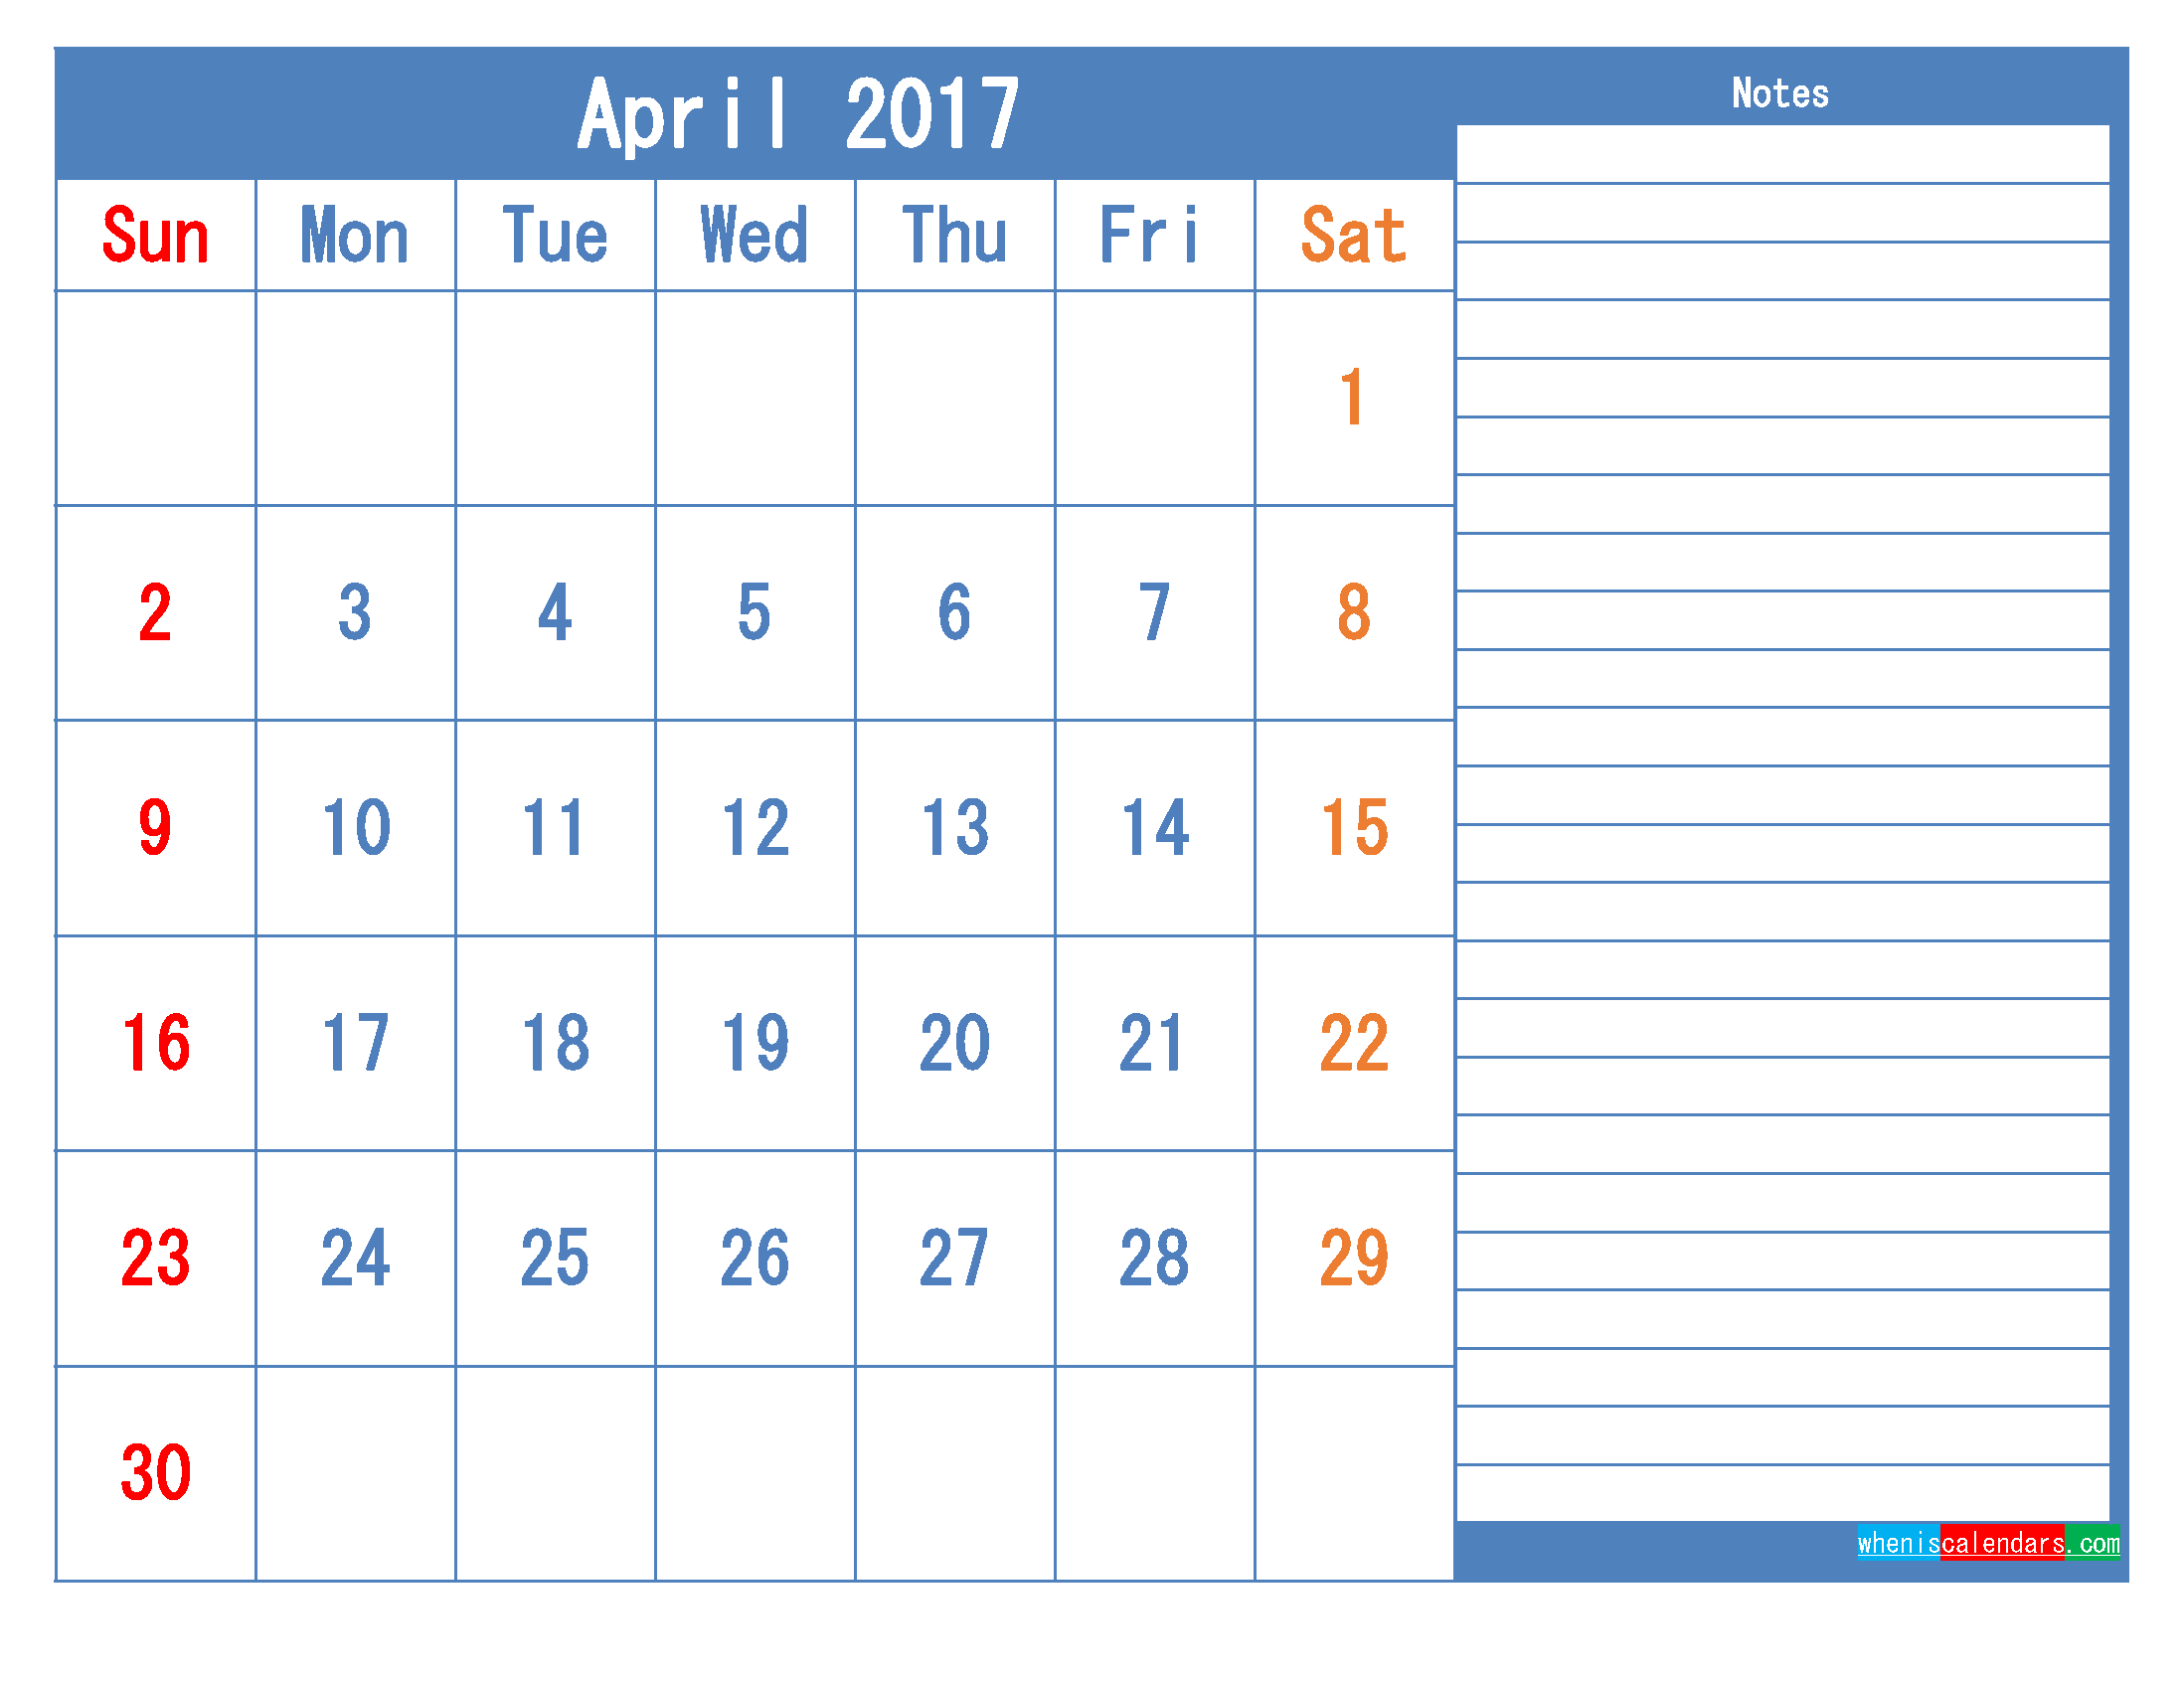 Printable Calendar 2017 April Monthly Calendar Template as PDF